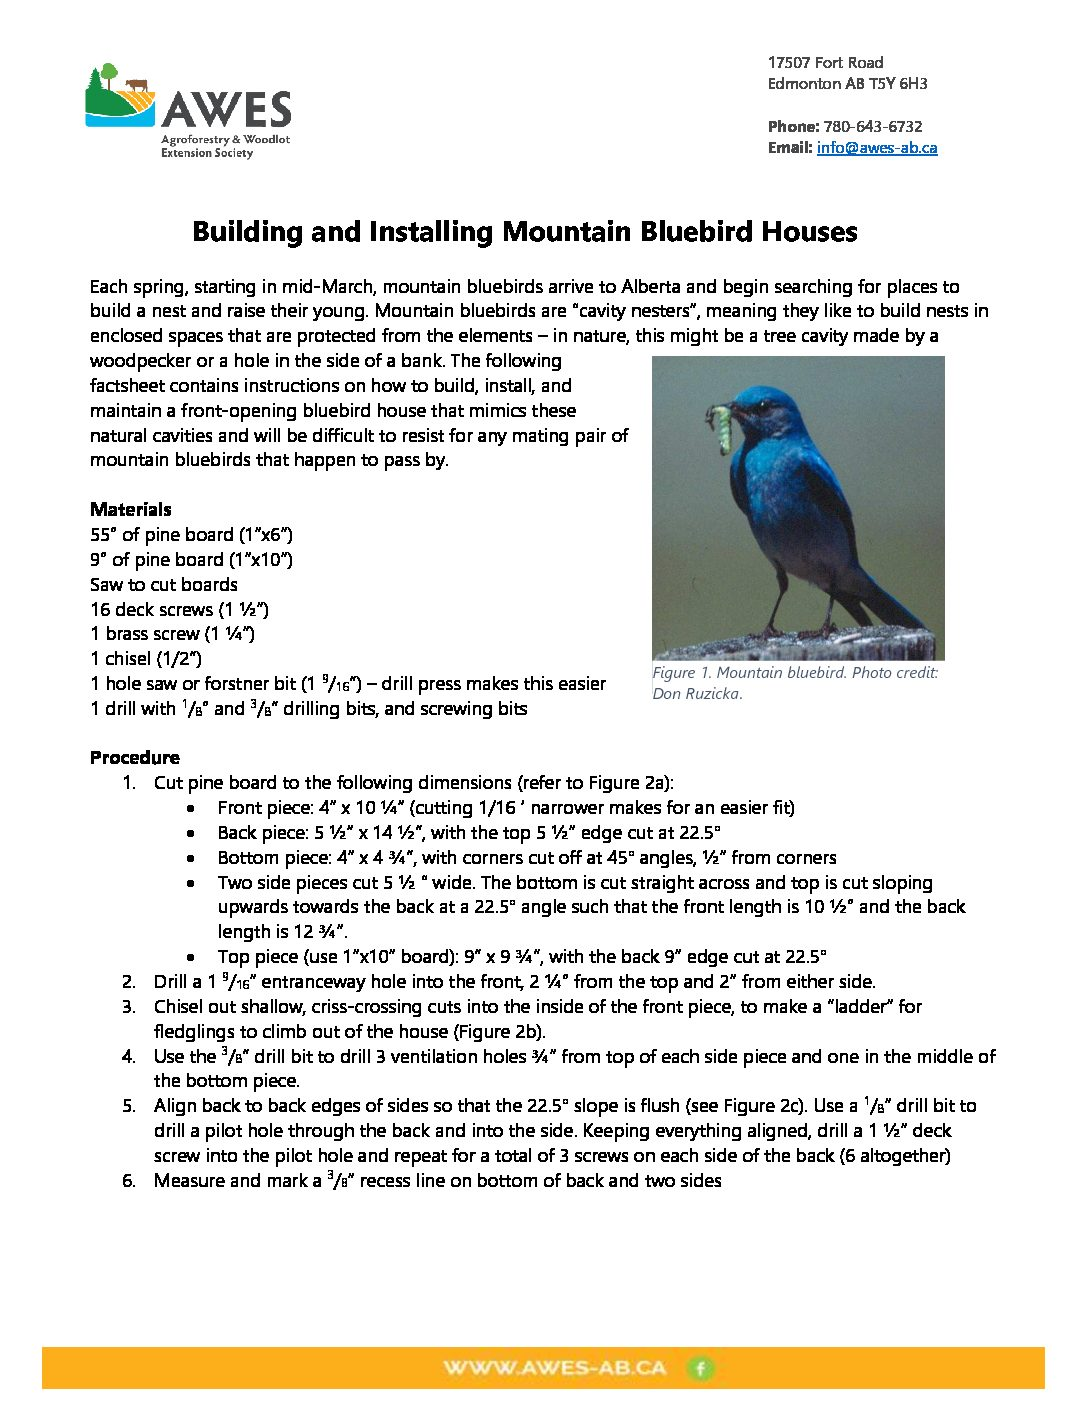 Building and Installing Bluebird Houses